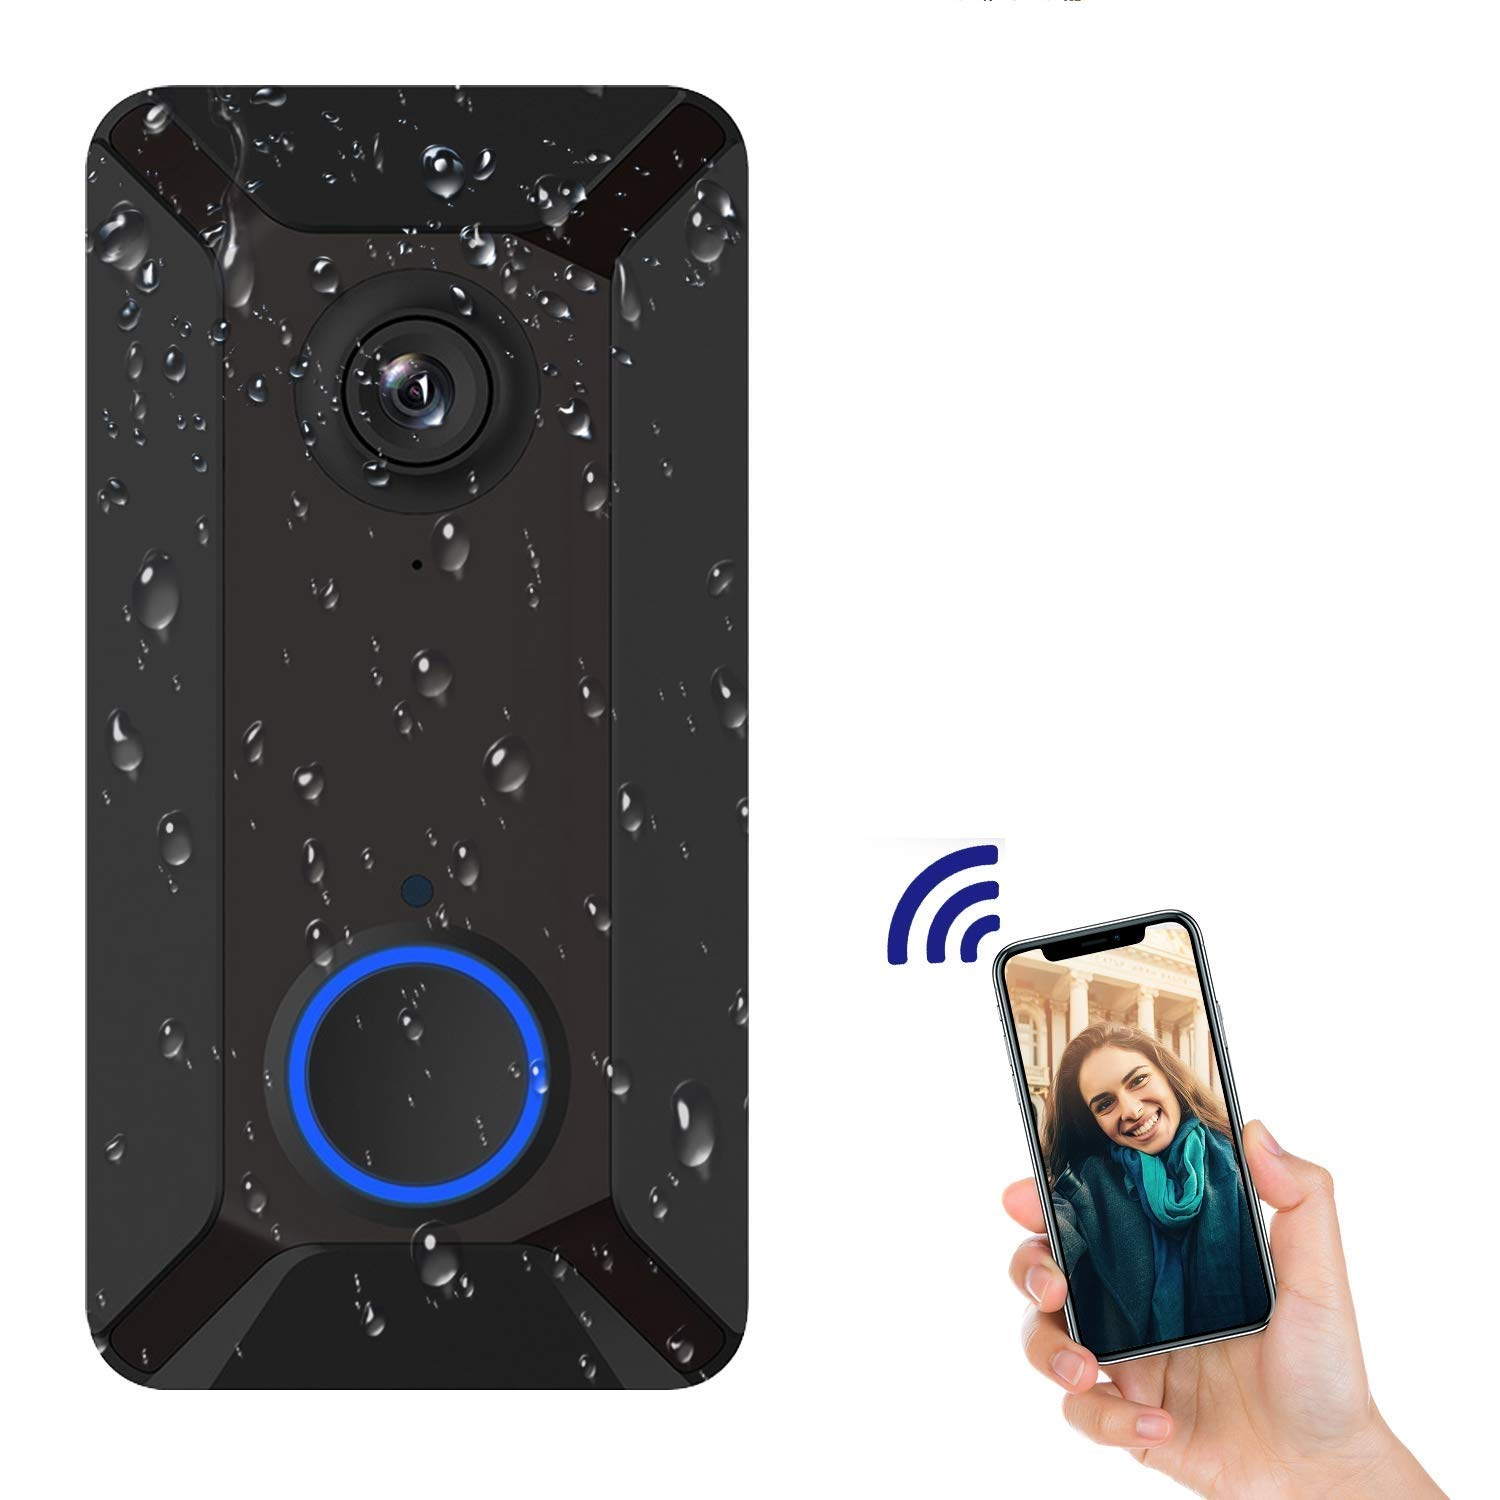 WiFi Video Doorbell Camera with LED Ring HD Waterproof Battery Power Two-Way Audio Talk Notification/Alert on Phone Free Cloud Recording Smart Night Vision-V6